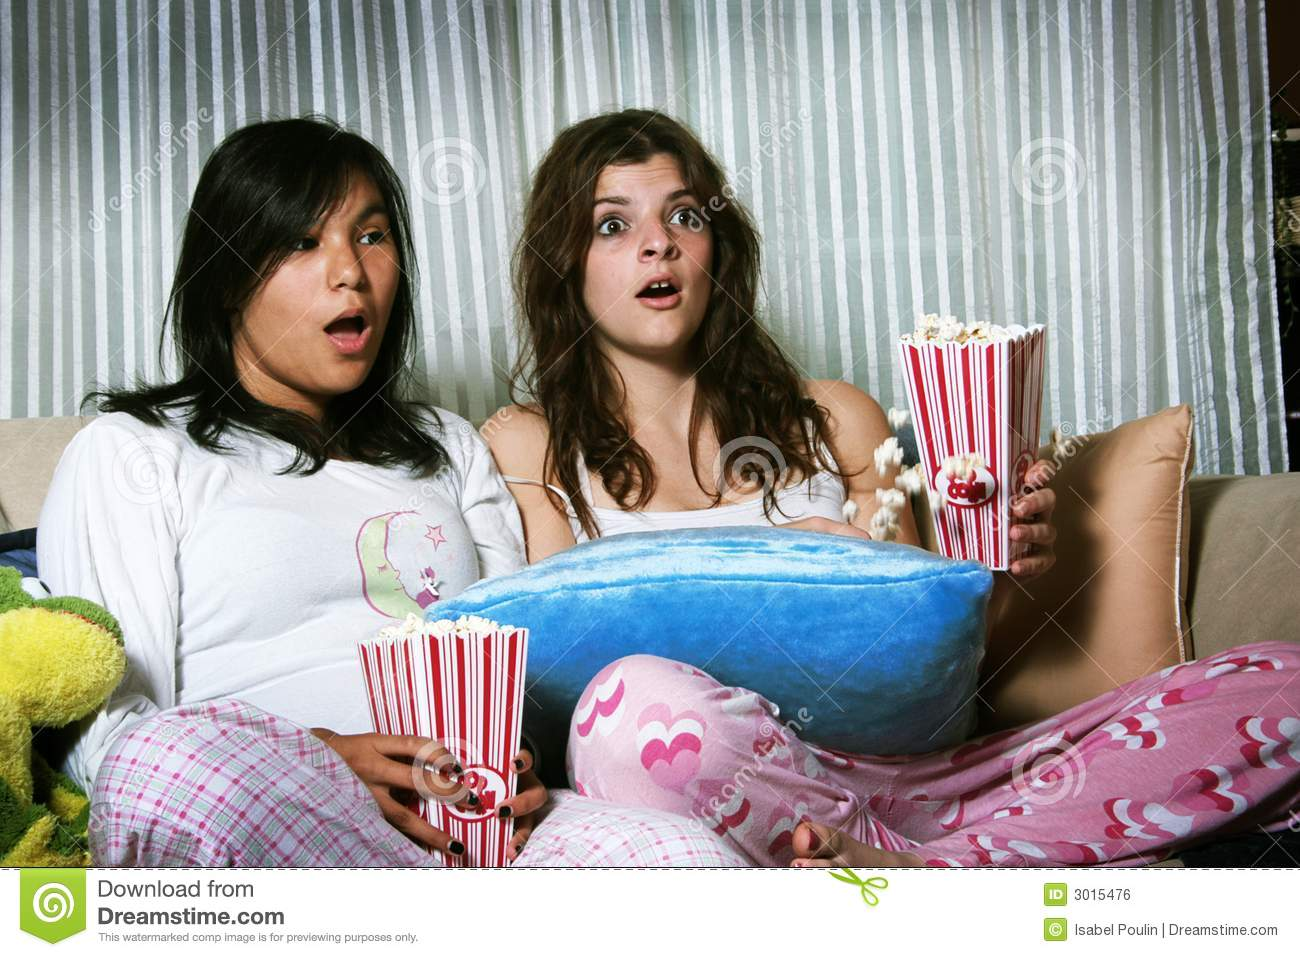 girls-watching-horror-movie-3015476.jpg